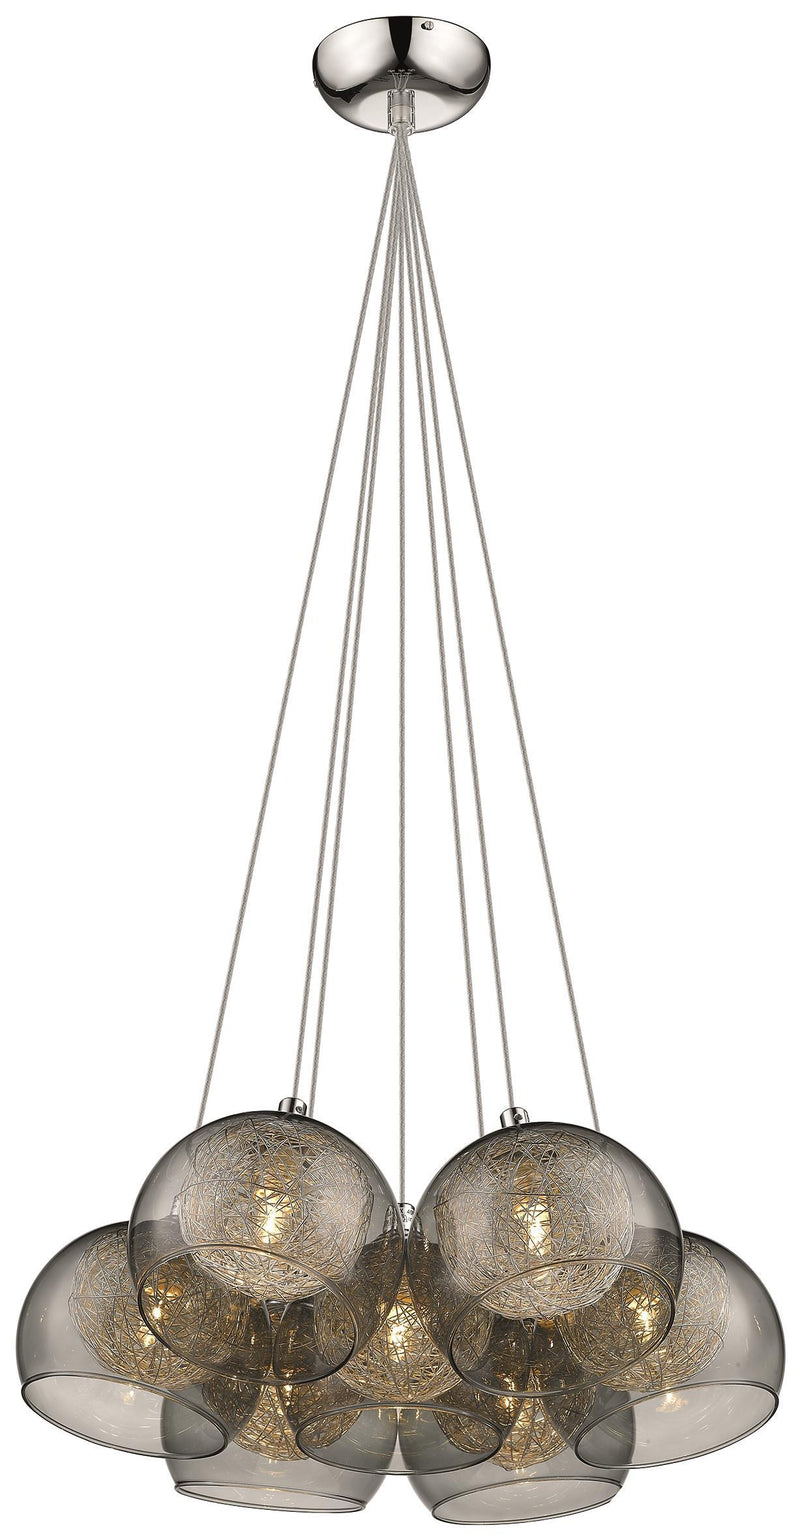 SND Lighting SND183 Eton 40cm Multi Light Pendant With Smoked Glass - SND Electrical Ltd